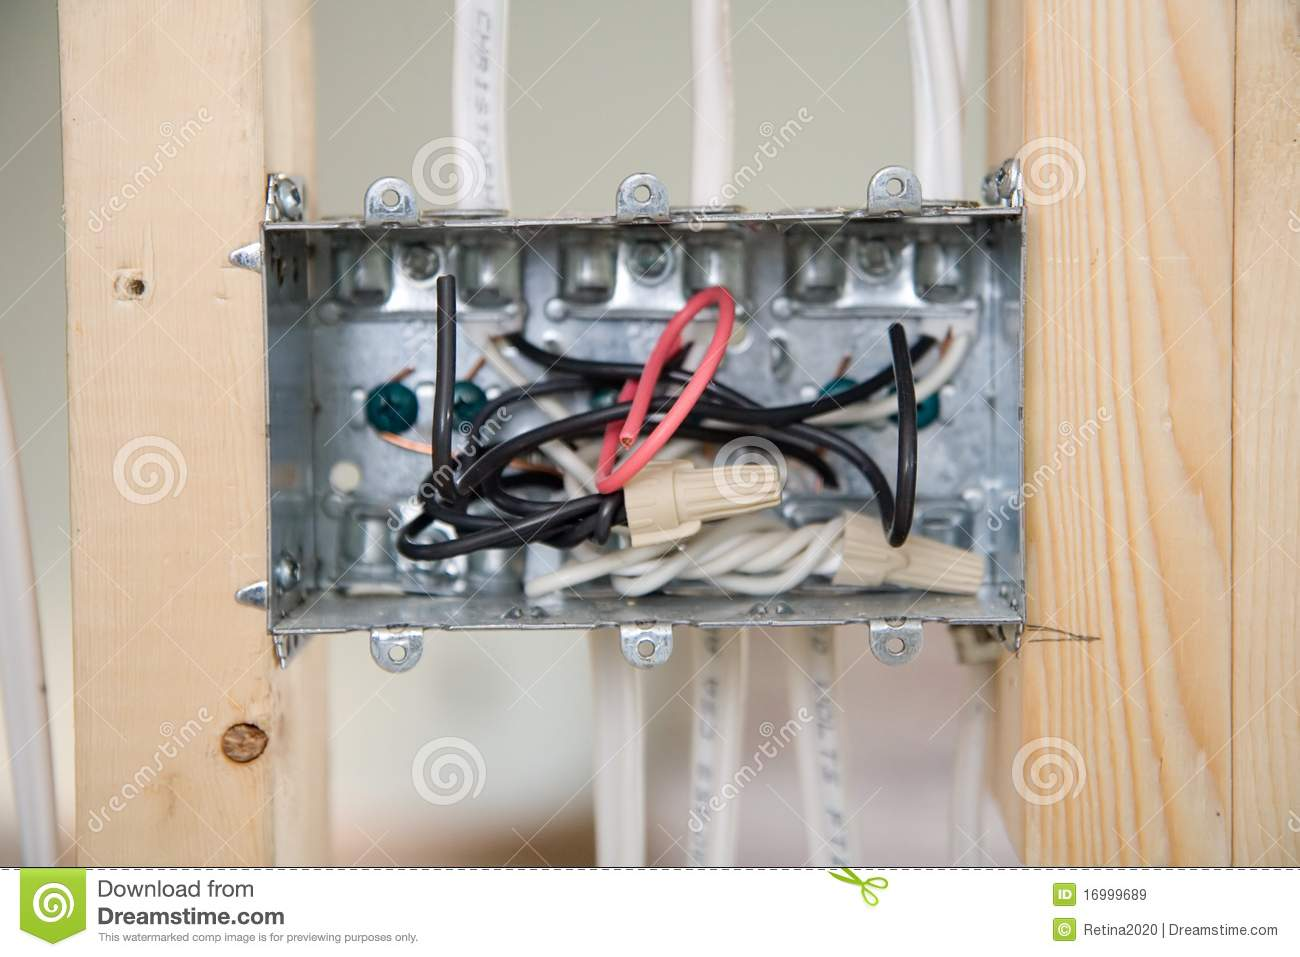 hight resolution of electrical box with wiring